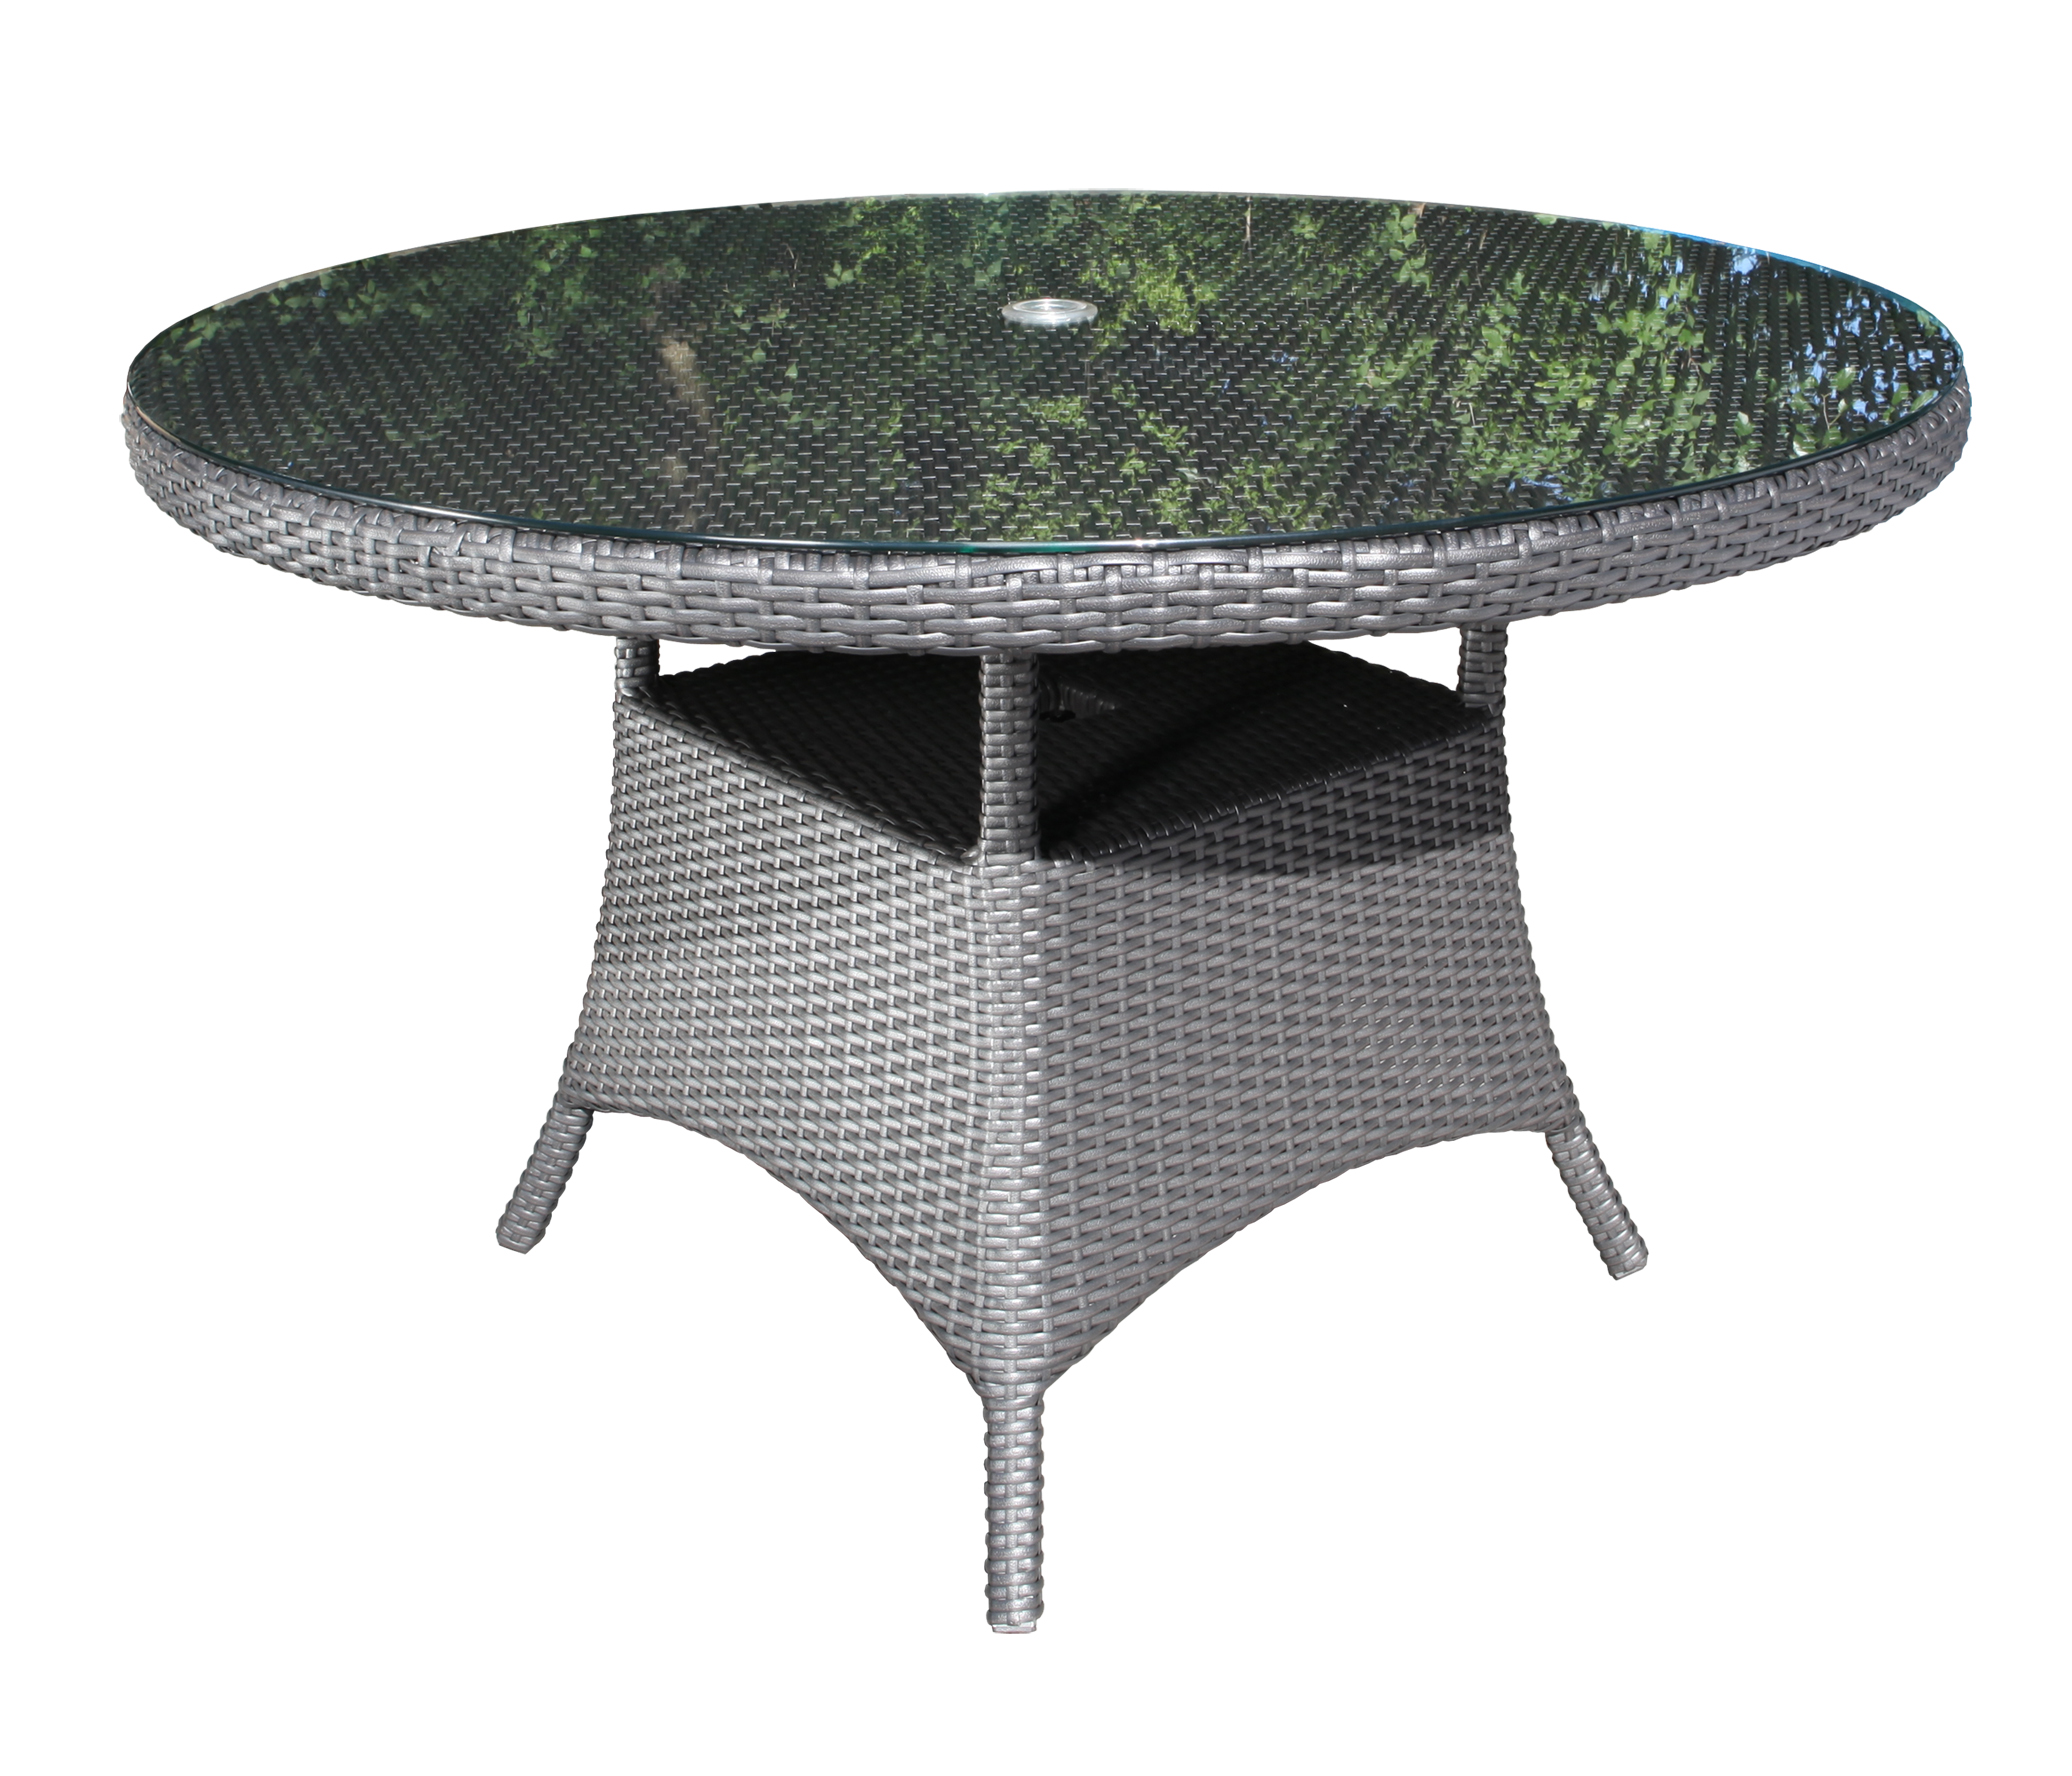 Solano Round Wicker 42 Quot Dining Table Patio Furniture At